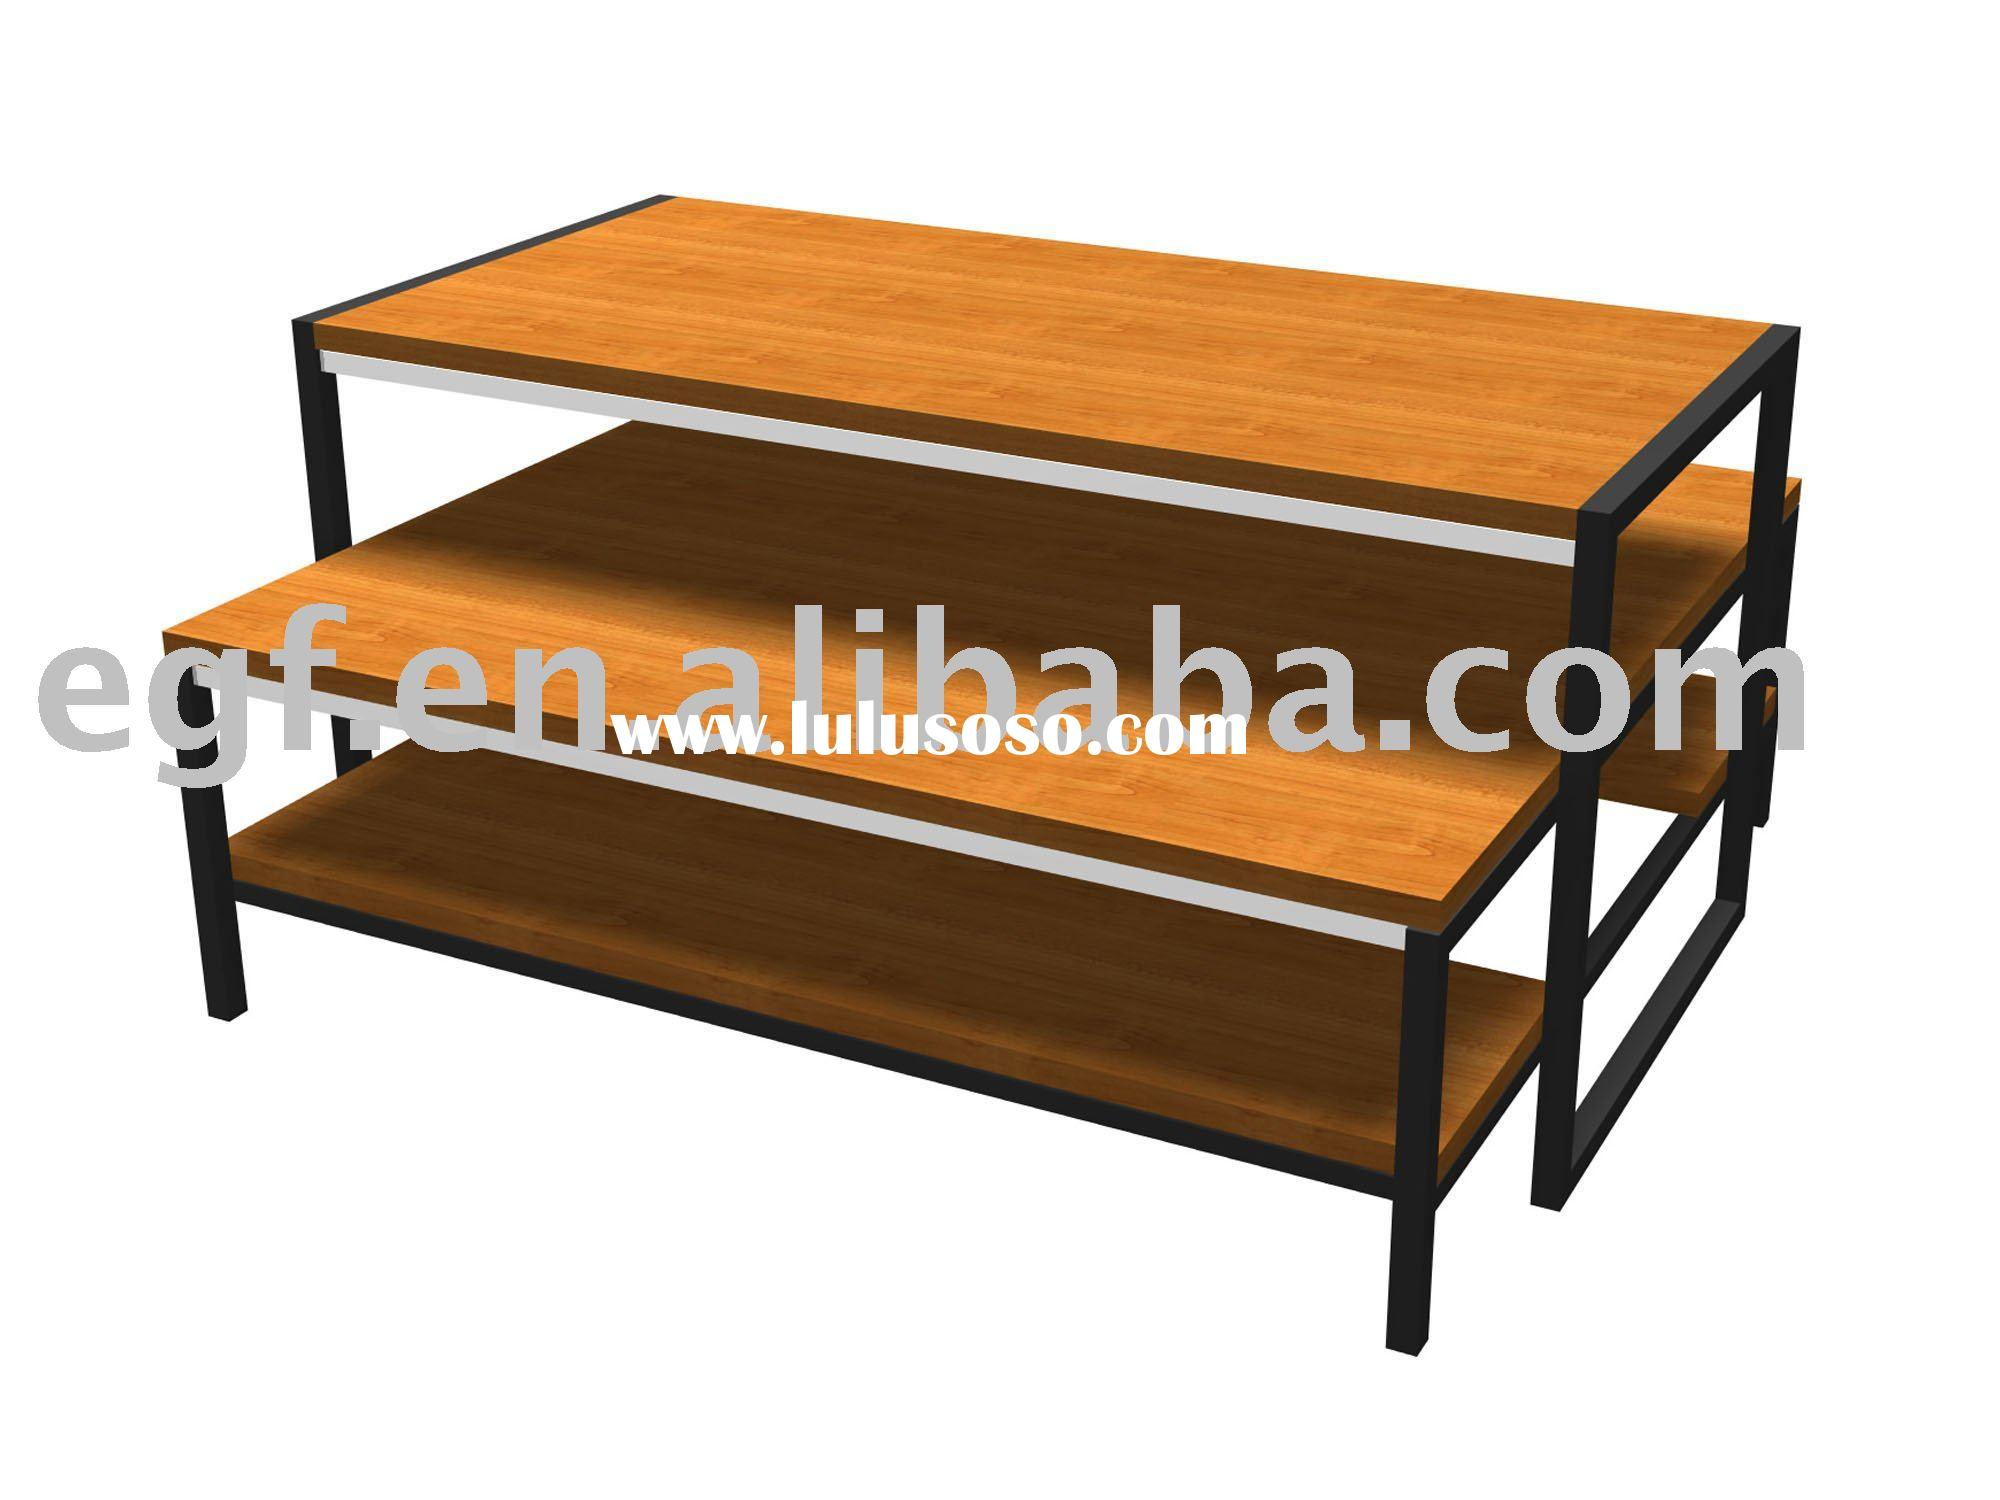 Nesting Display Table / Wooden Display Table / Nested Table